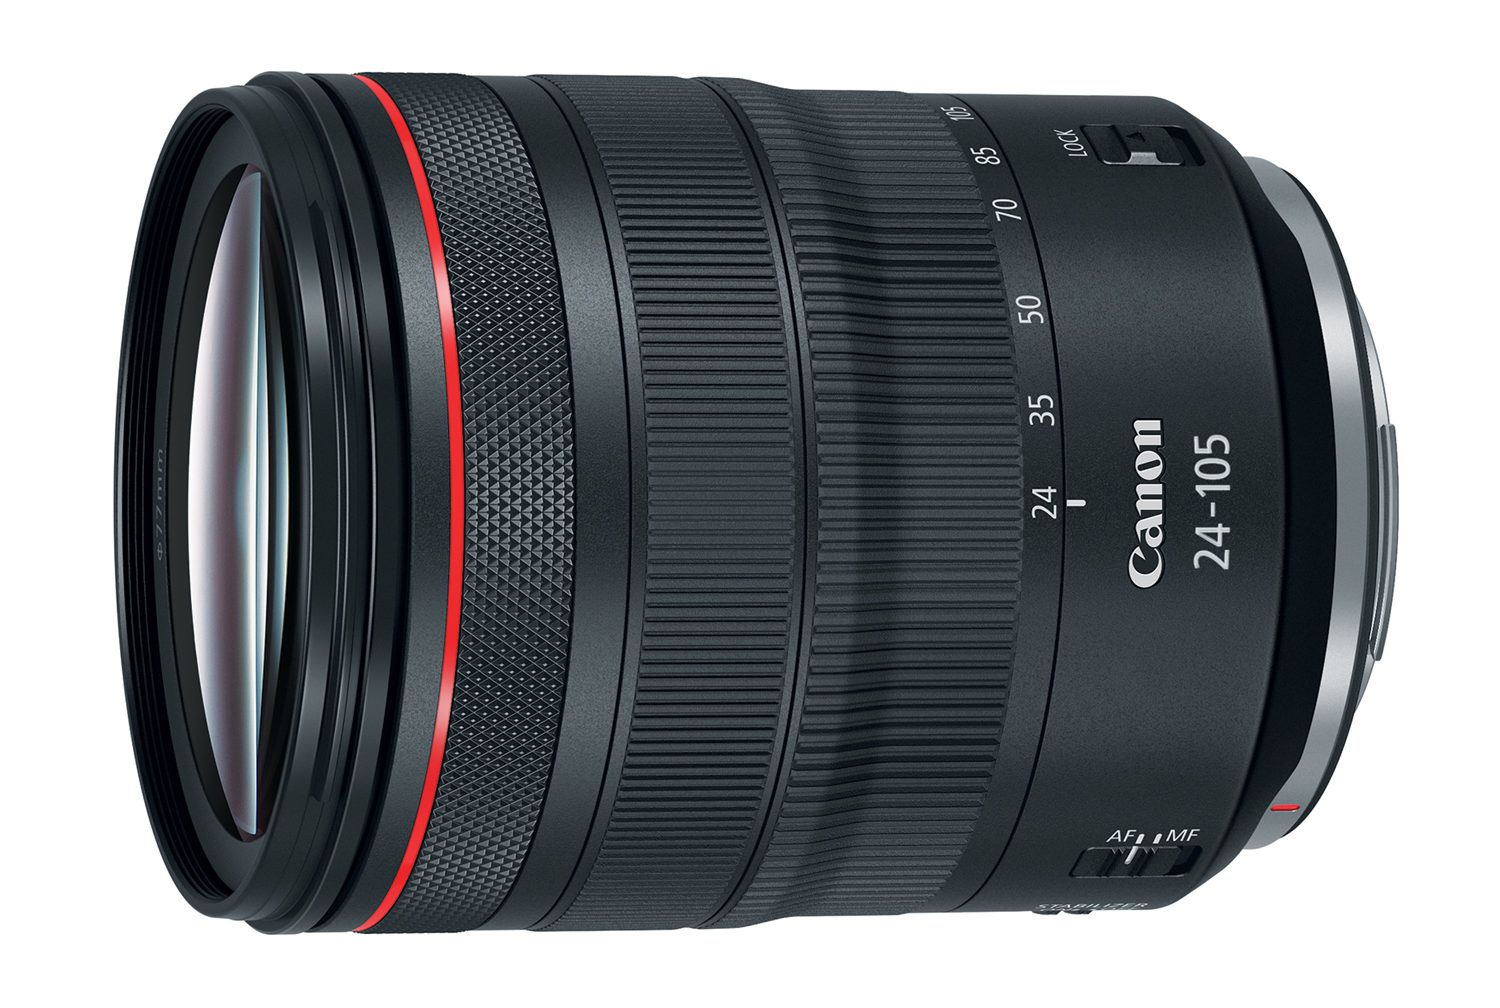 Canon Rf 24 105mm F 4l Is For Eos R Review Optically Above Dslr Variant Photography Blog Canon Rf 24 105mm F 4l Is At A Glance Canon Lens Canon Camera Lens